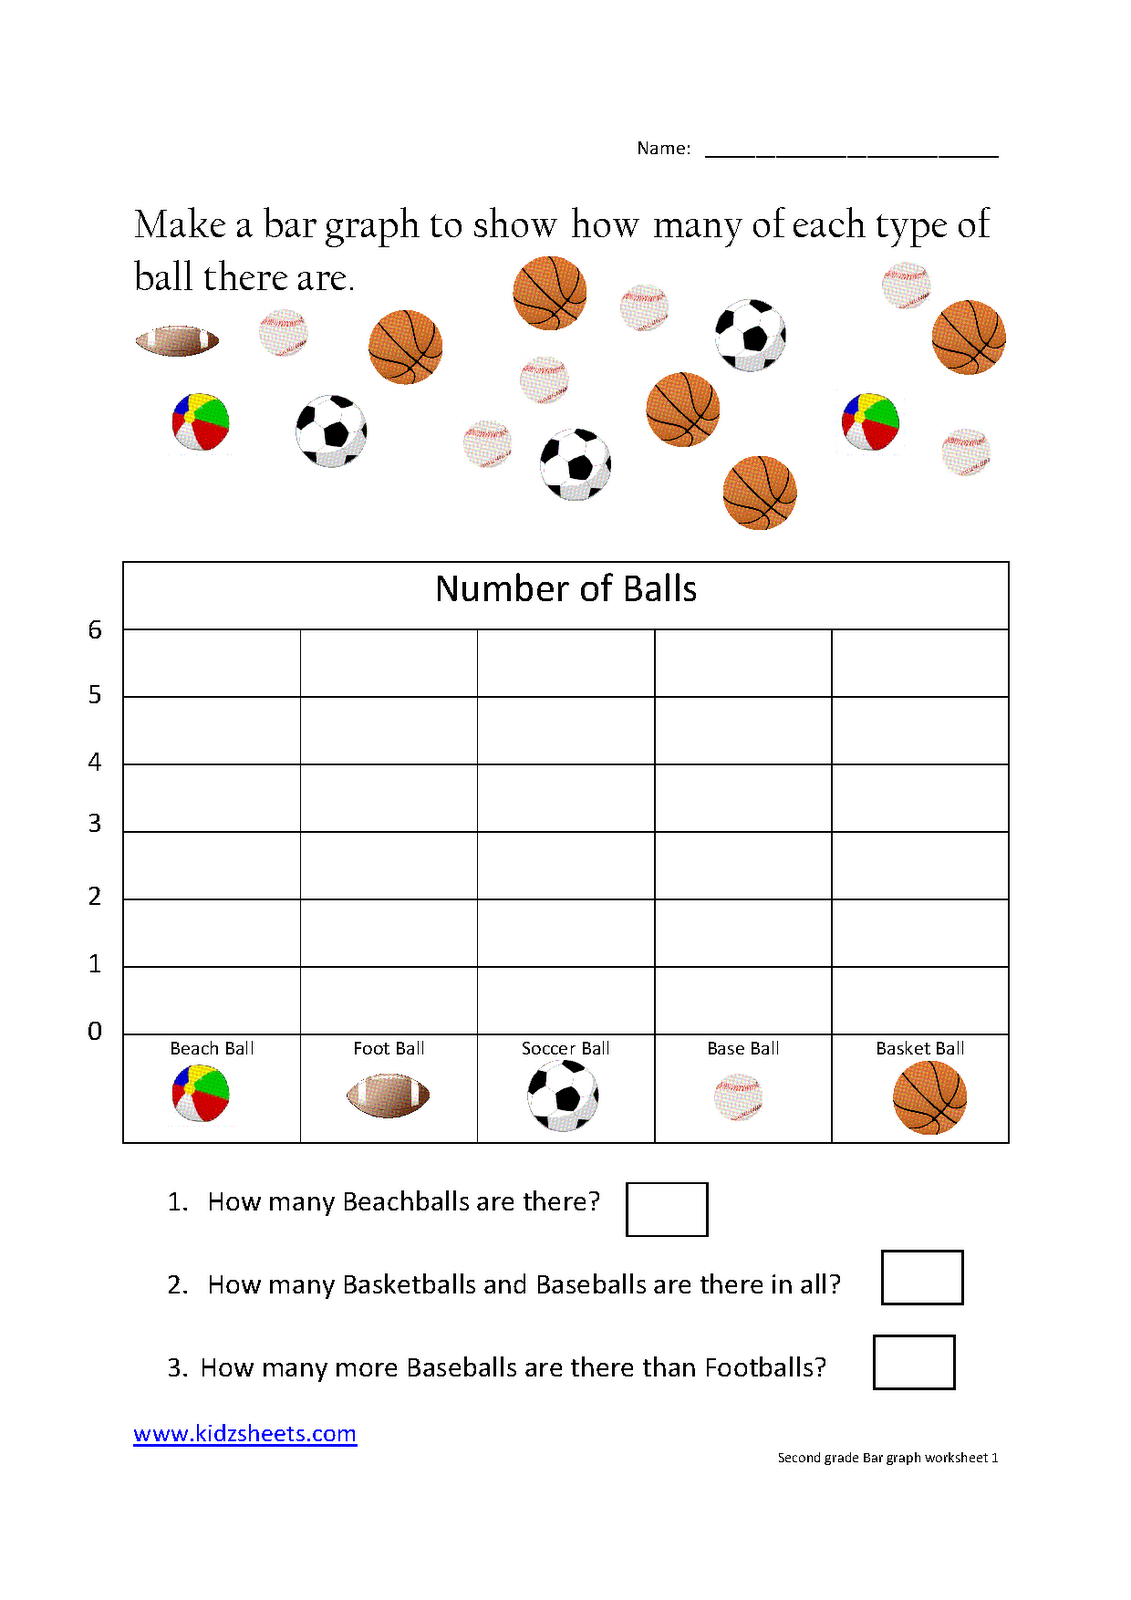 Kidz Worksheets: Second Grade Bar Graph Worksheet1 | School | Kids - Printable Graphing Puzzles